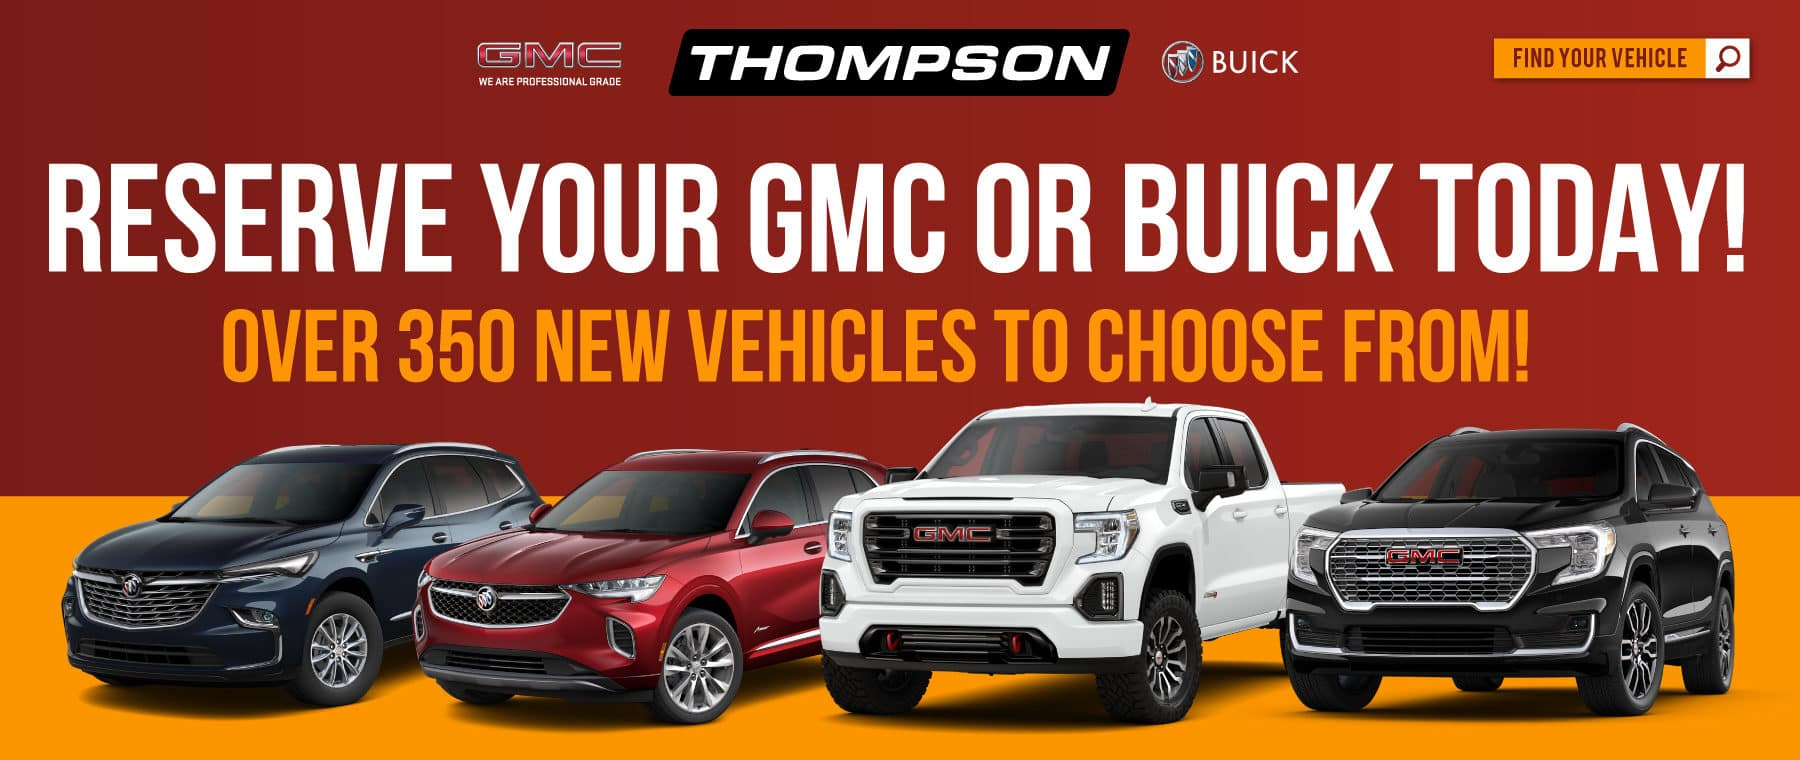 Reserve your Buick or GMC now